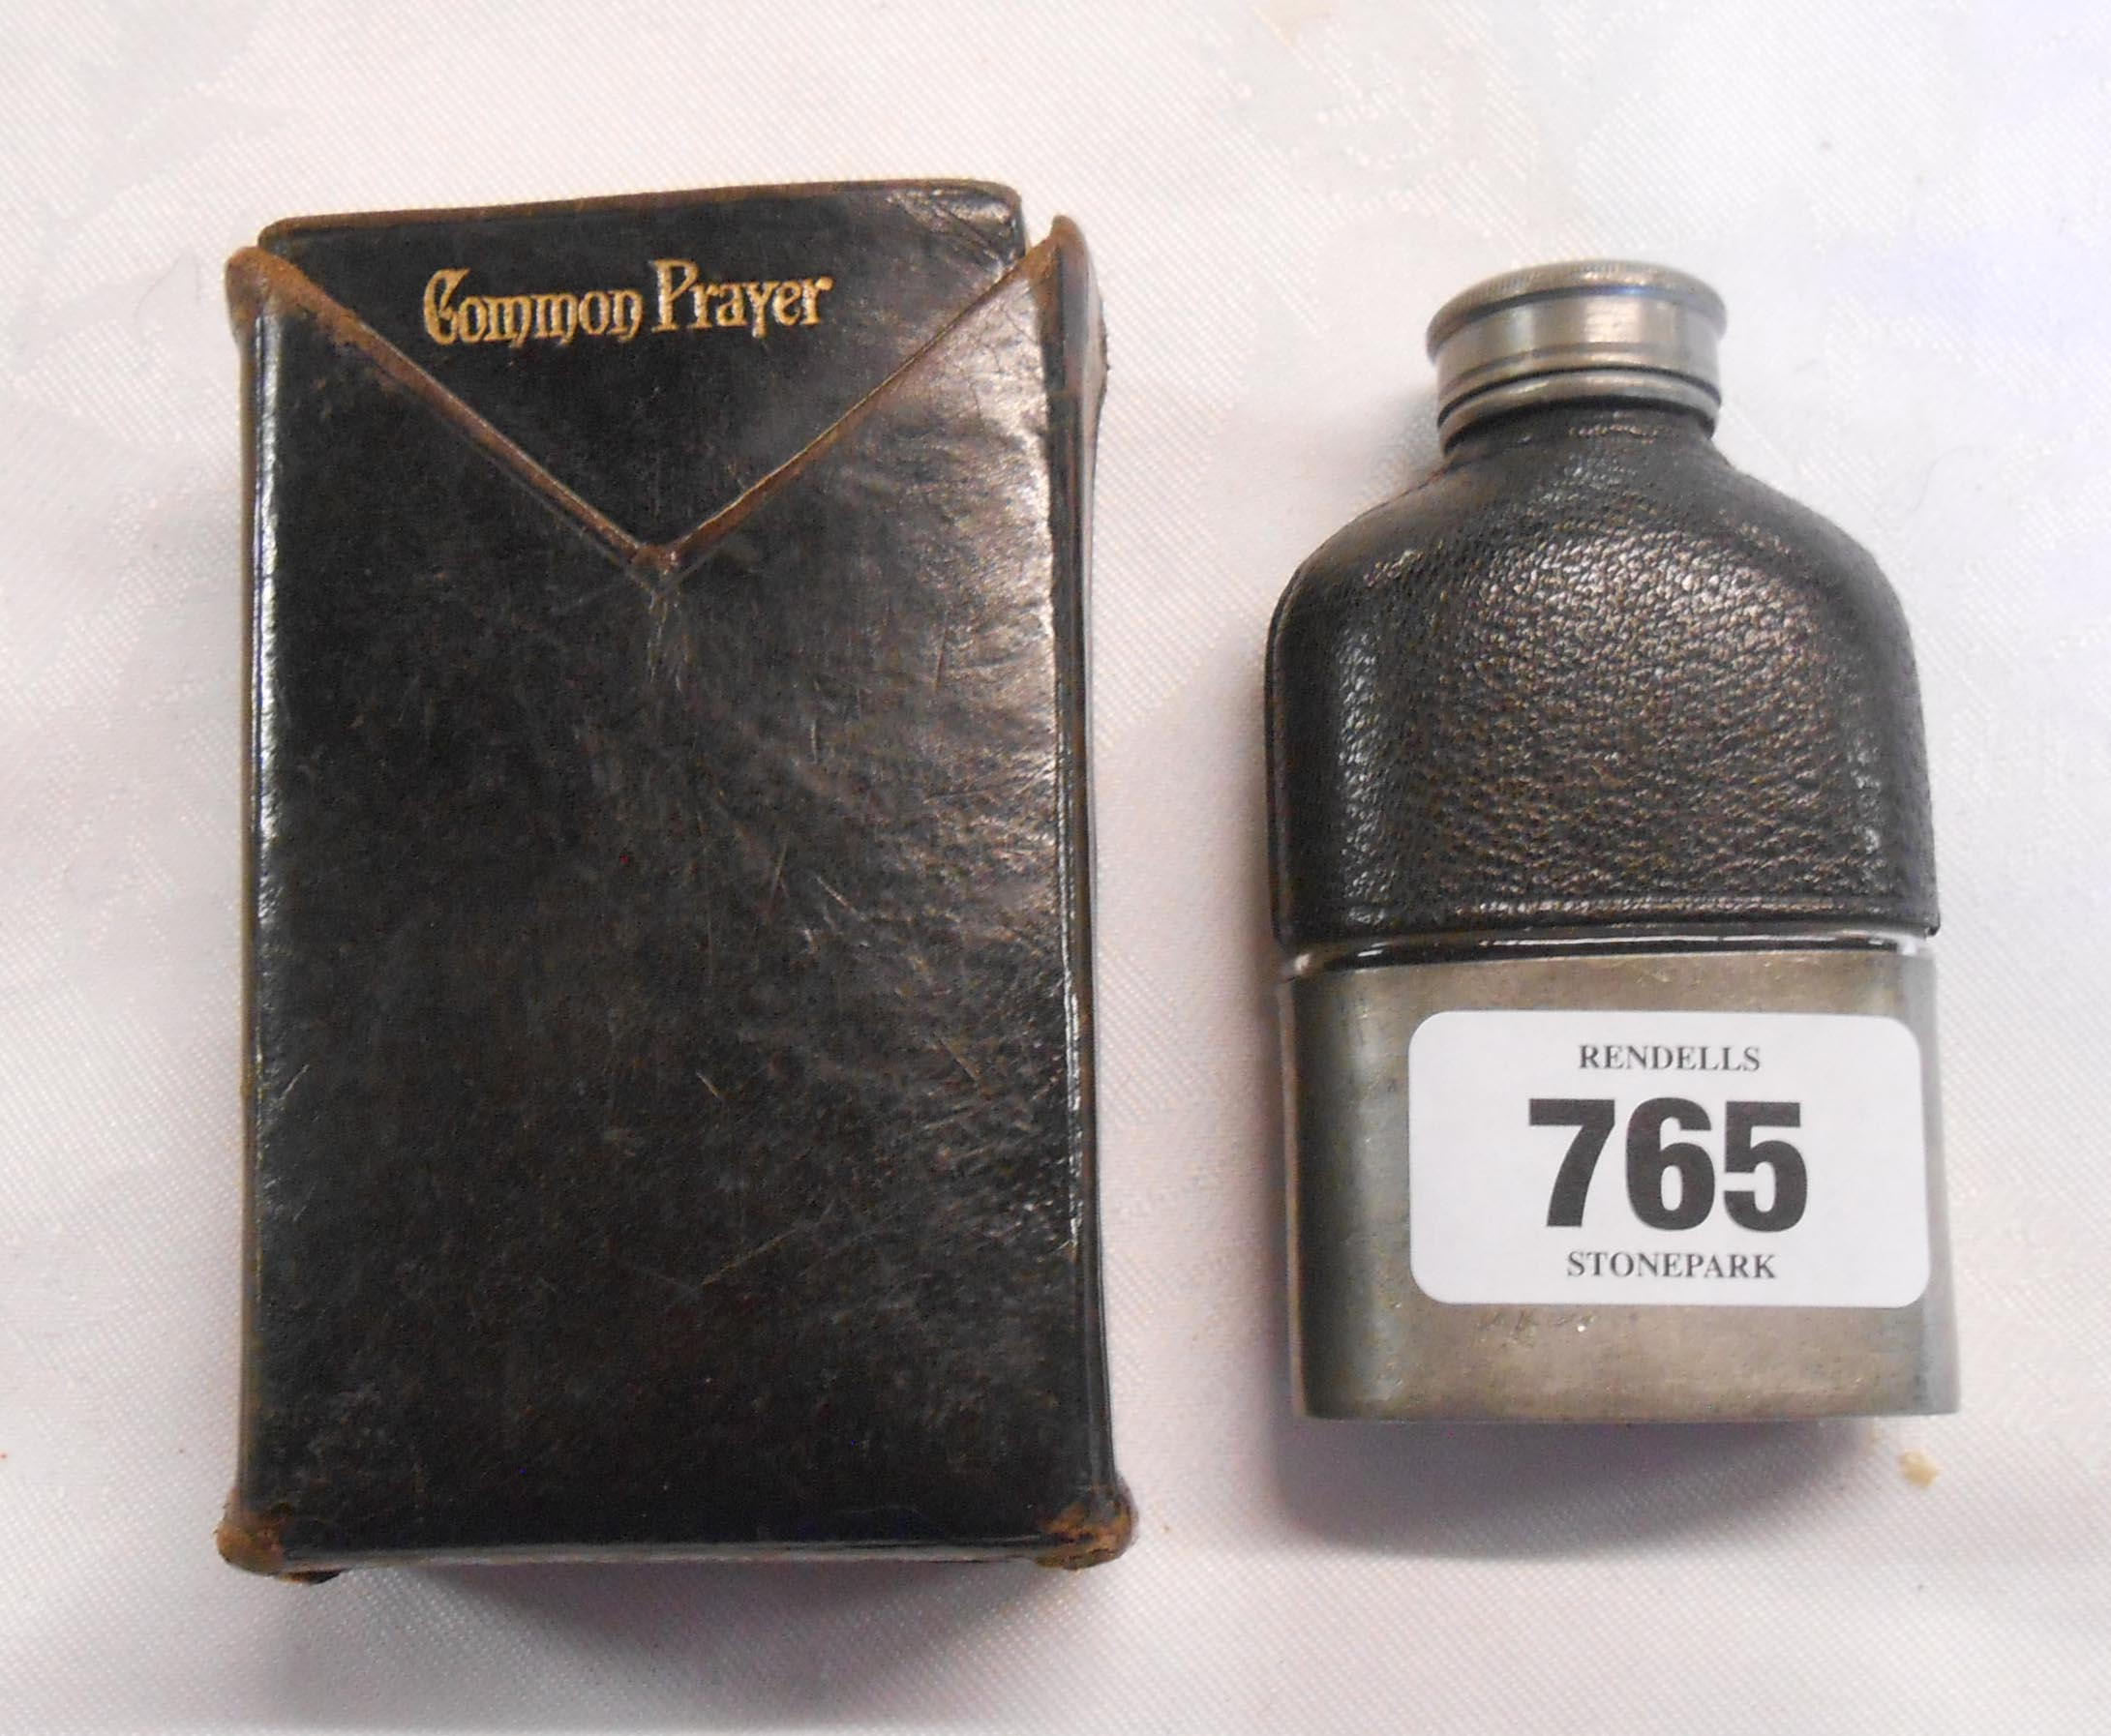 A pewter and leather clad small hipflask - sold with a leather sleeved Hymns Ancient and Modern